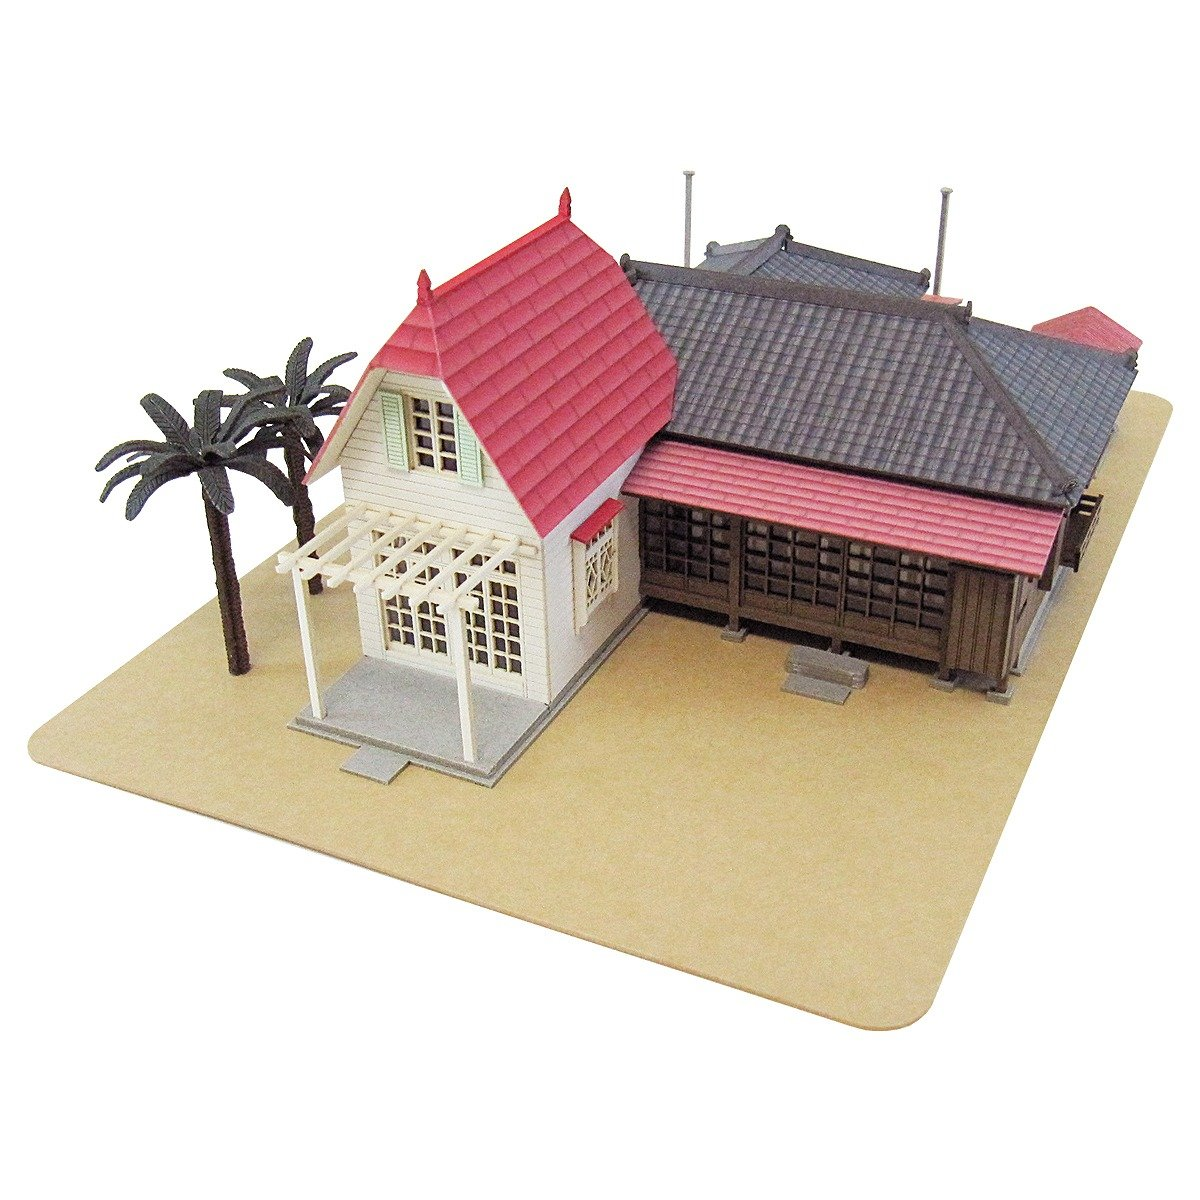 1/150 Satsuki Mei House My Neighbor Totoro Mk07-01 [Toy] (japan import) Giant